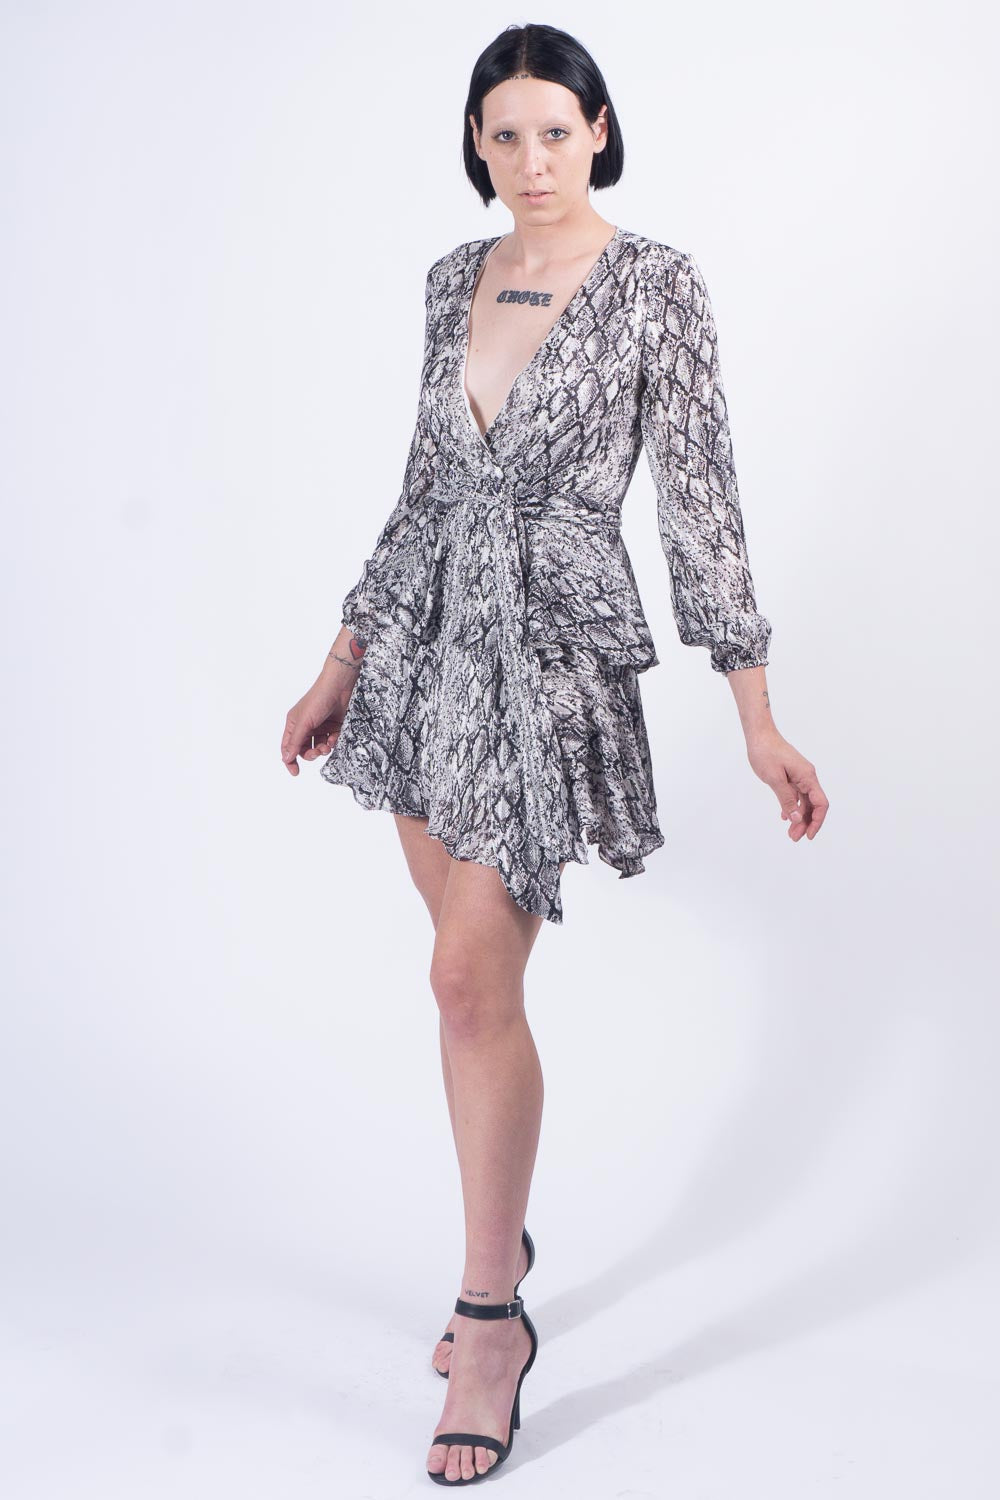 Black/White Python Dress